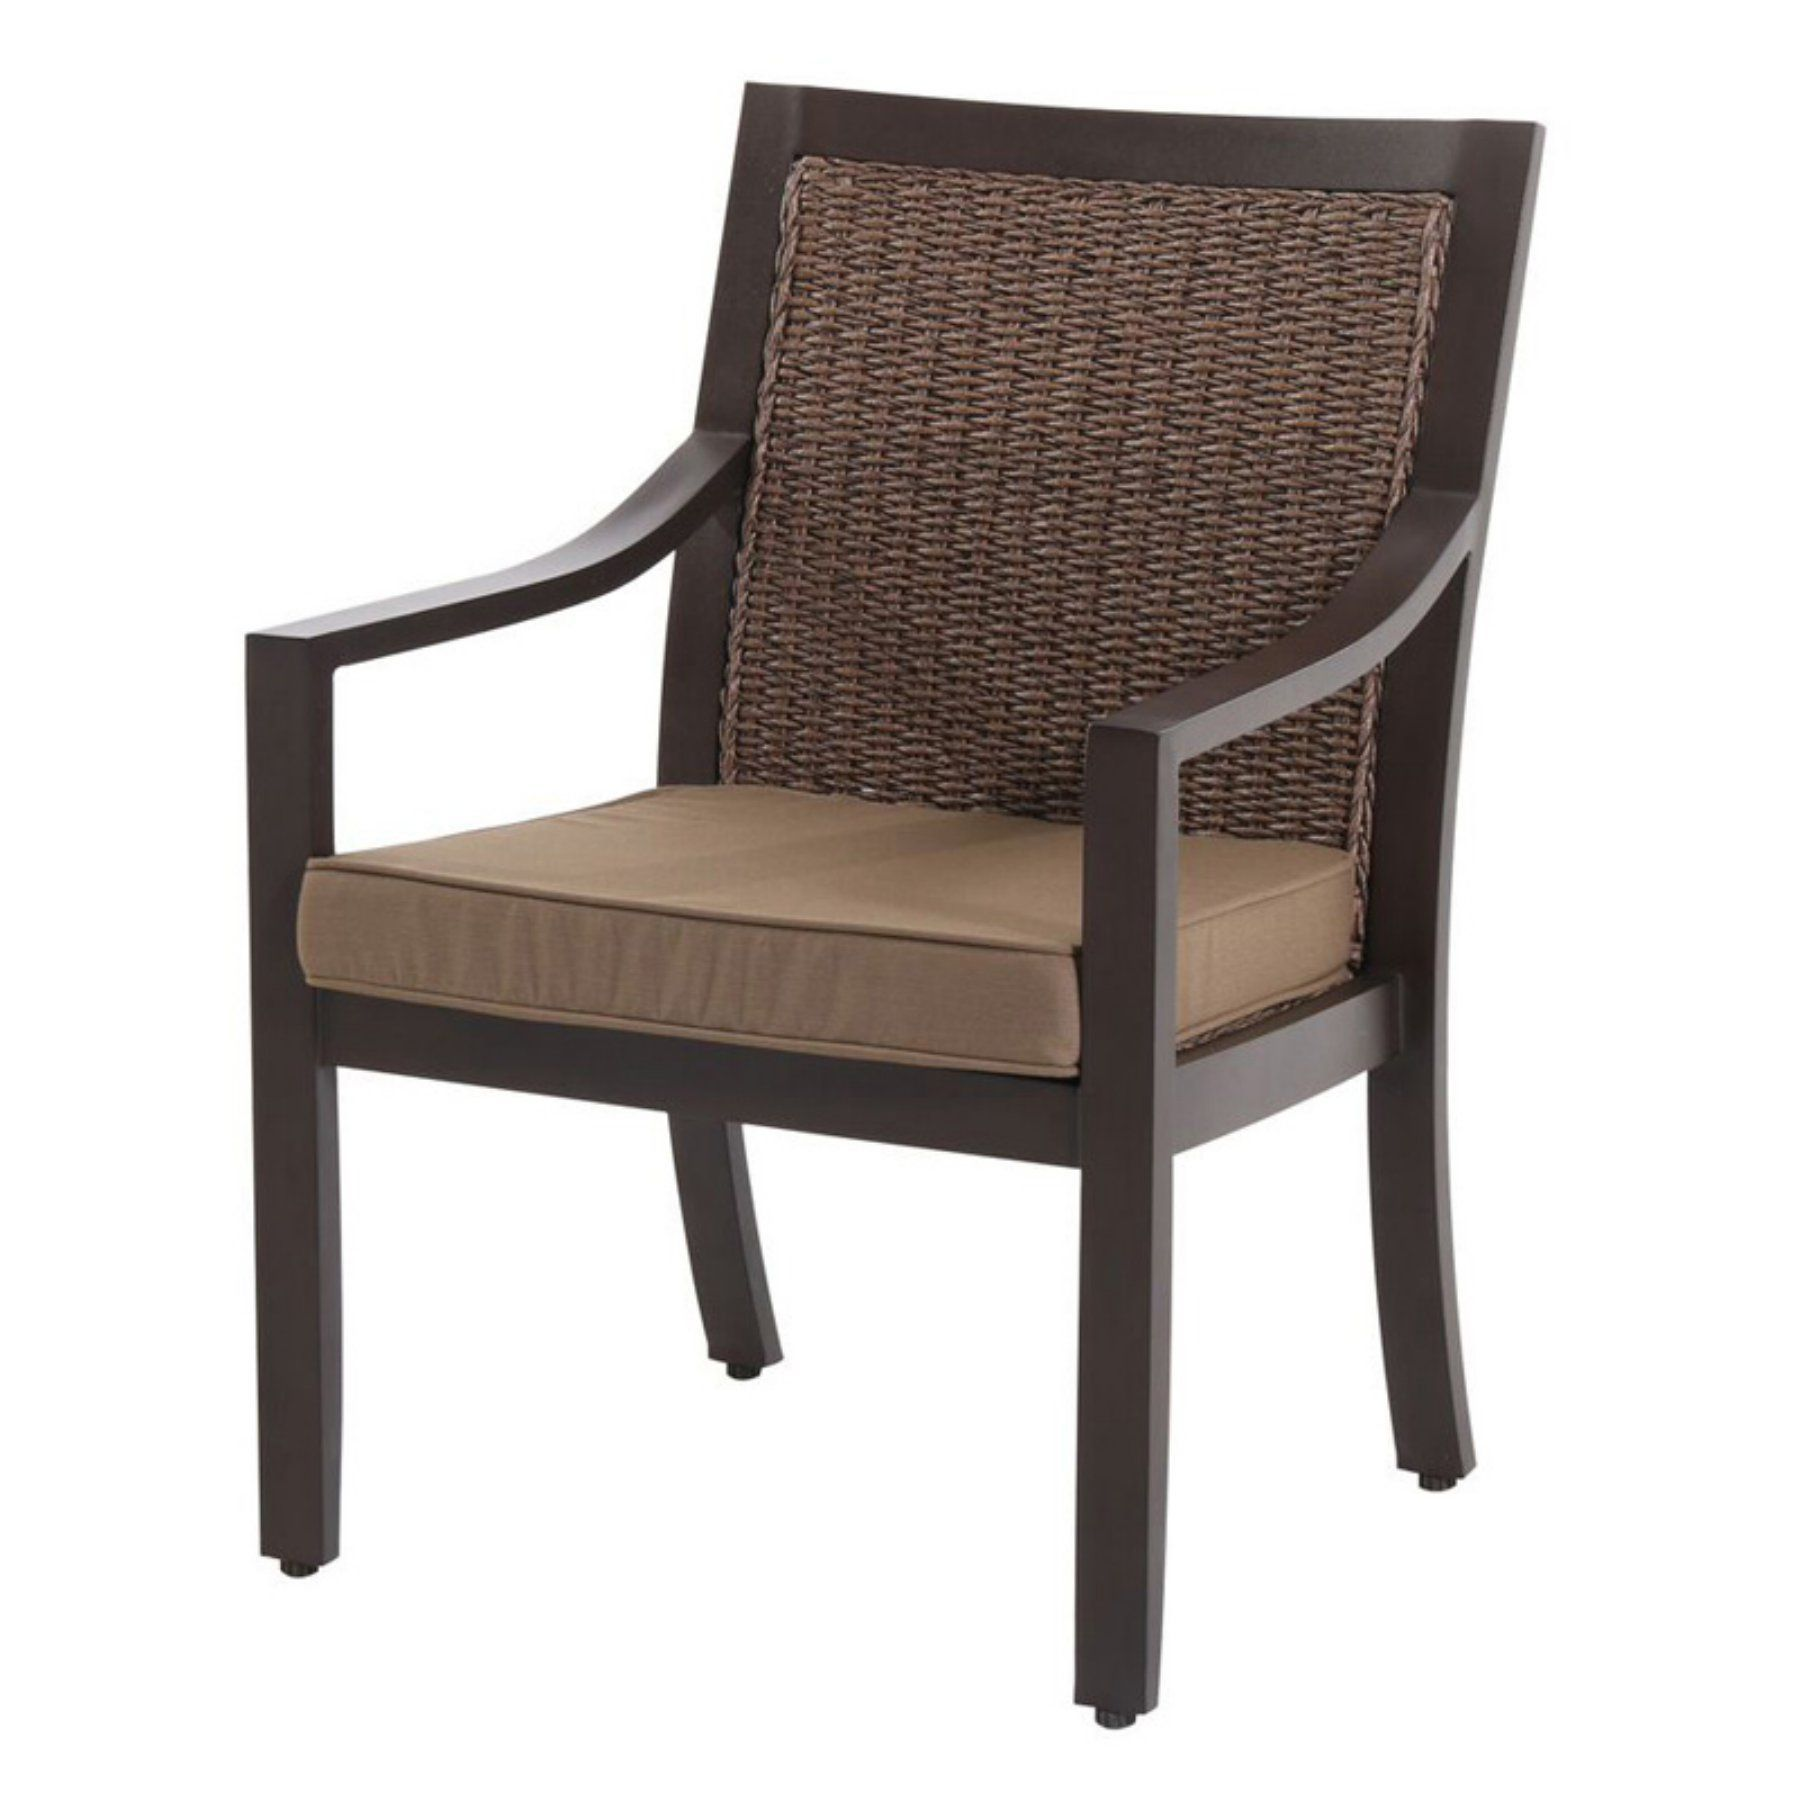 Outdoor Royal Garden Biscay Wicker Patio Dining Chair with Cushions - Spectrum Caribou - A085000-02-SCAC